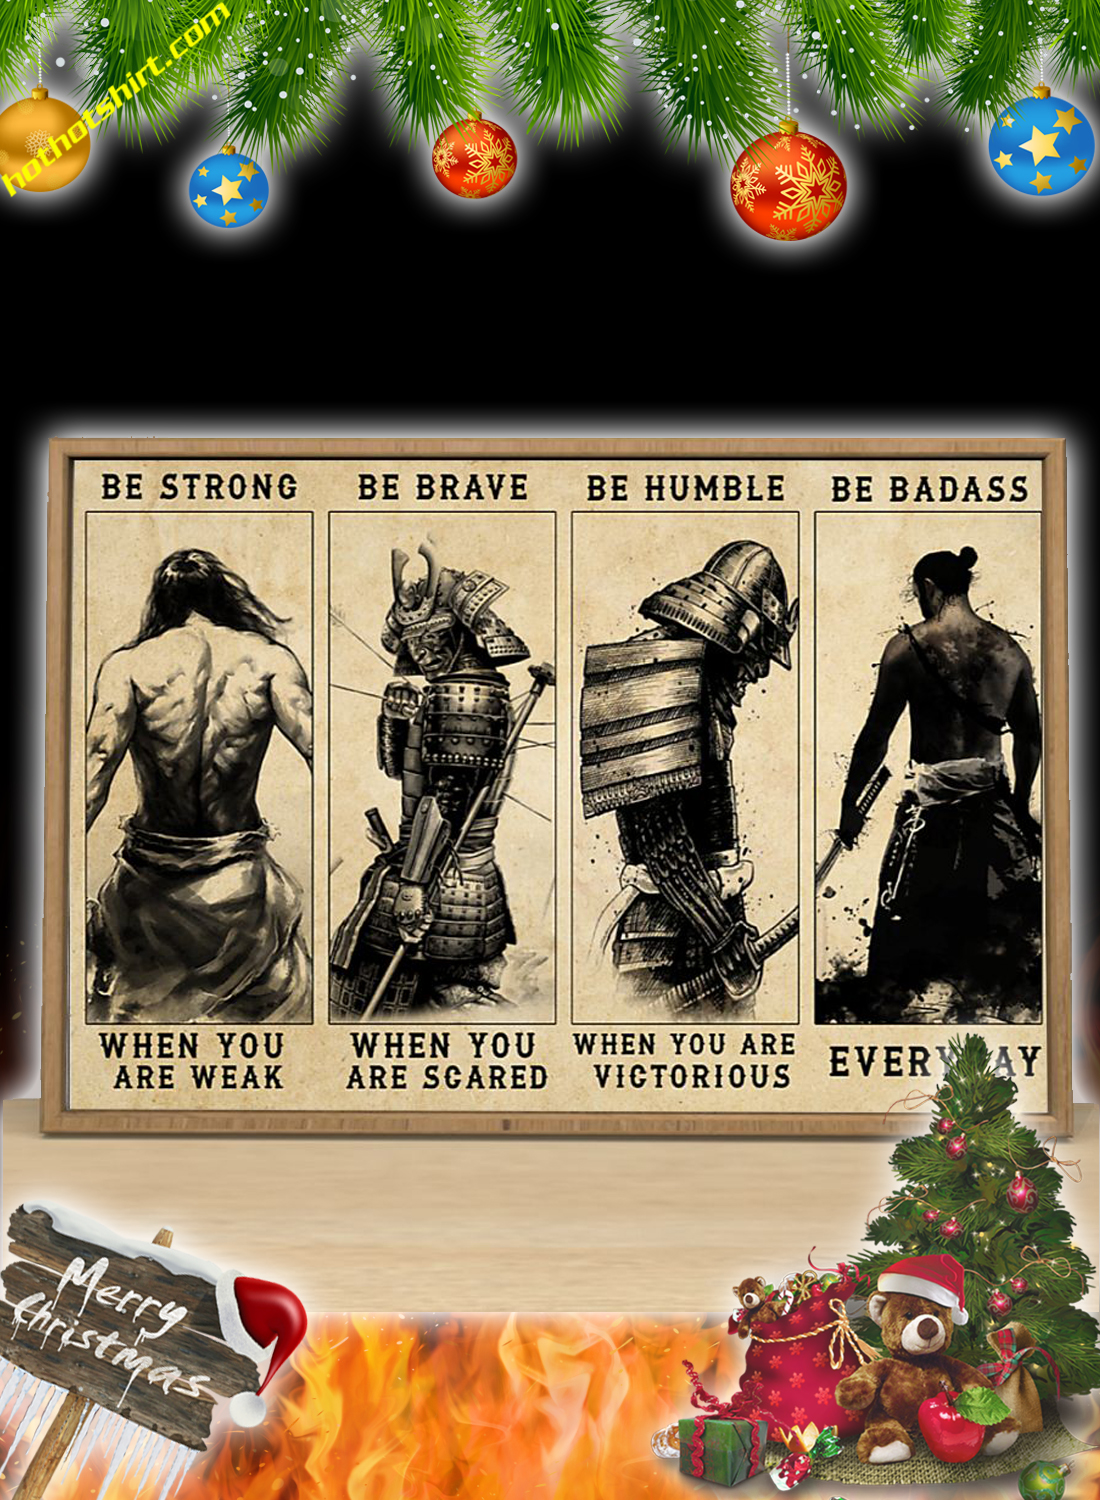 Samurai be strong be brave be humble be badass poster 3